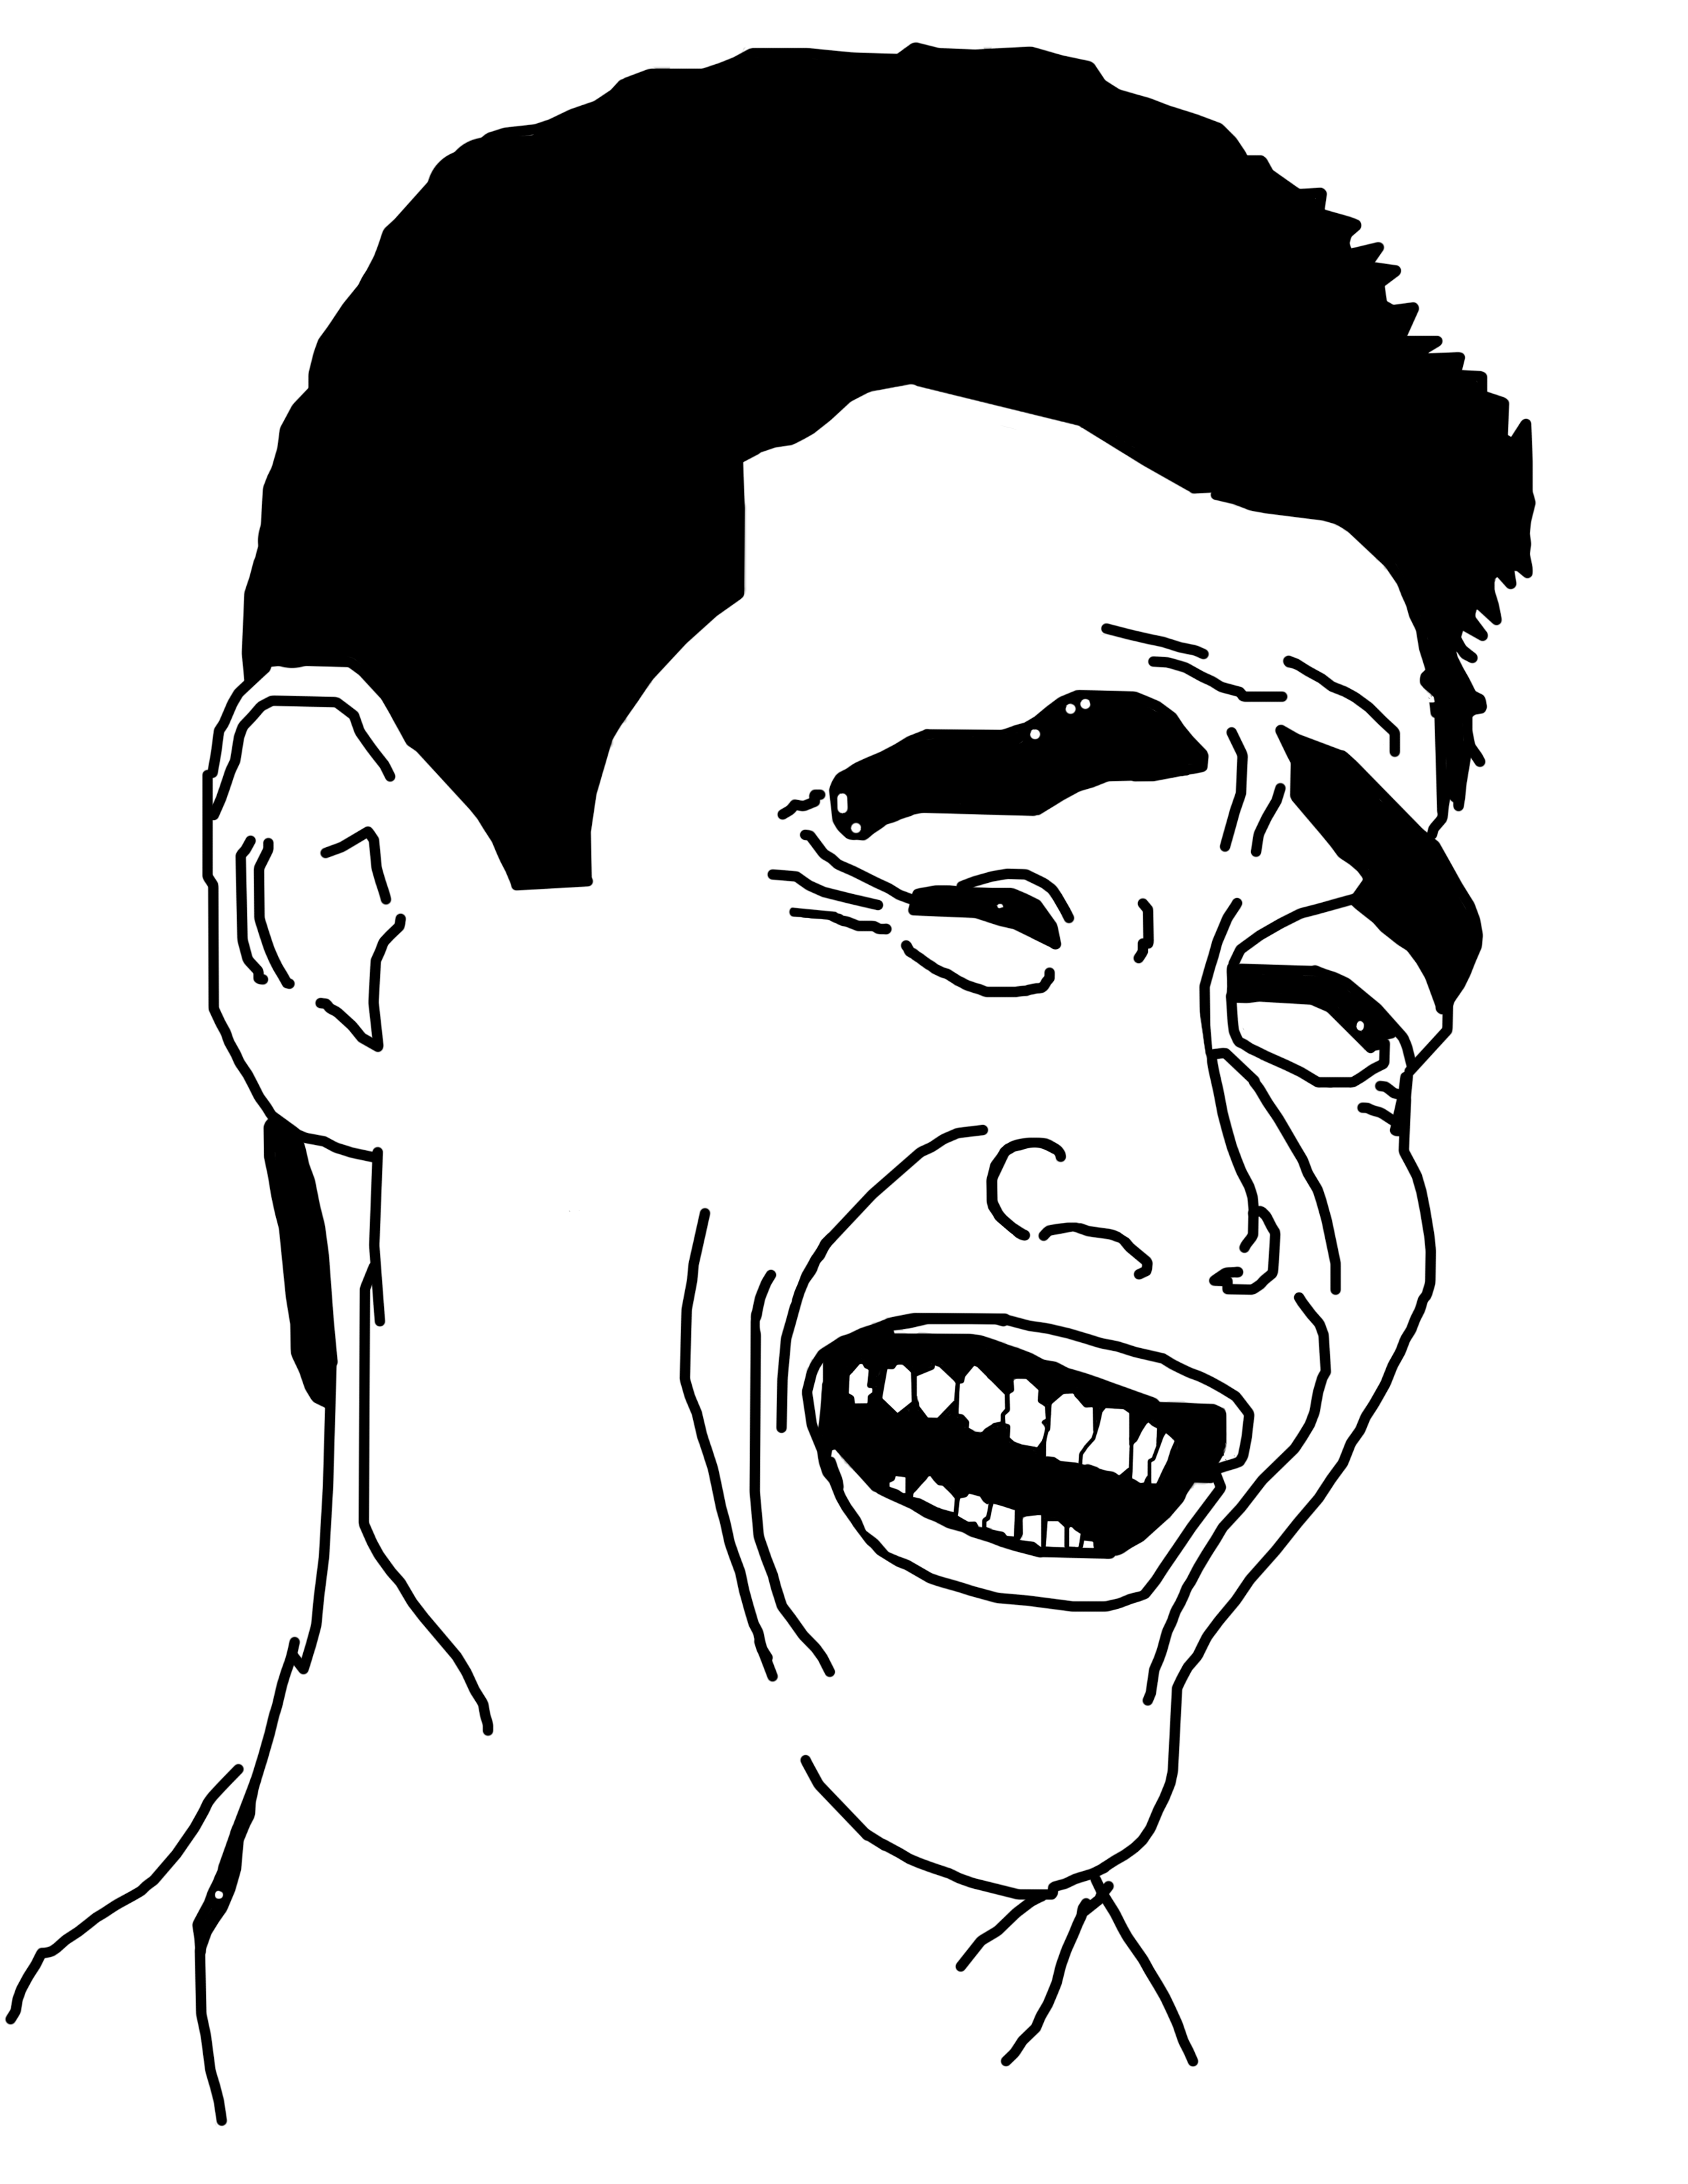 Free Laughing Cartoon Face Download Free Clip Art Free